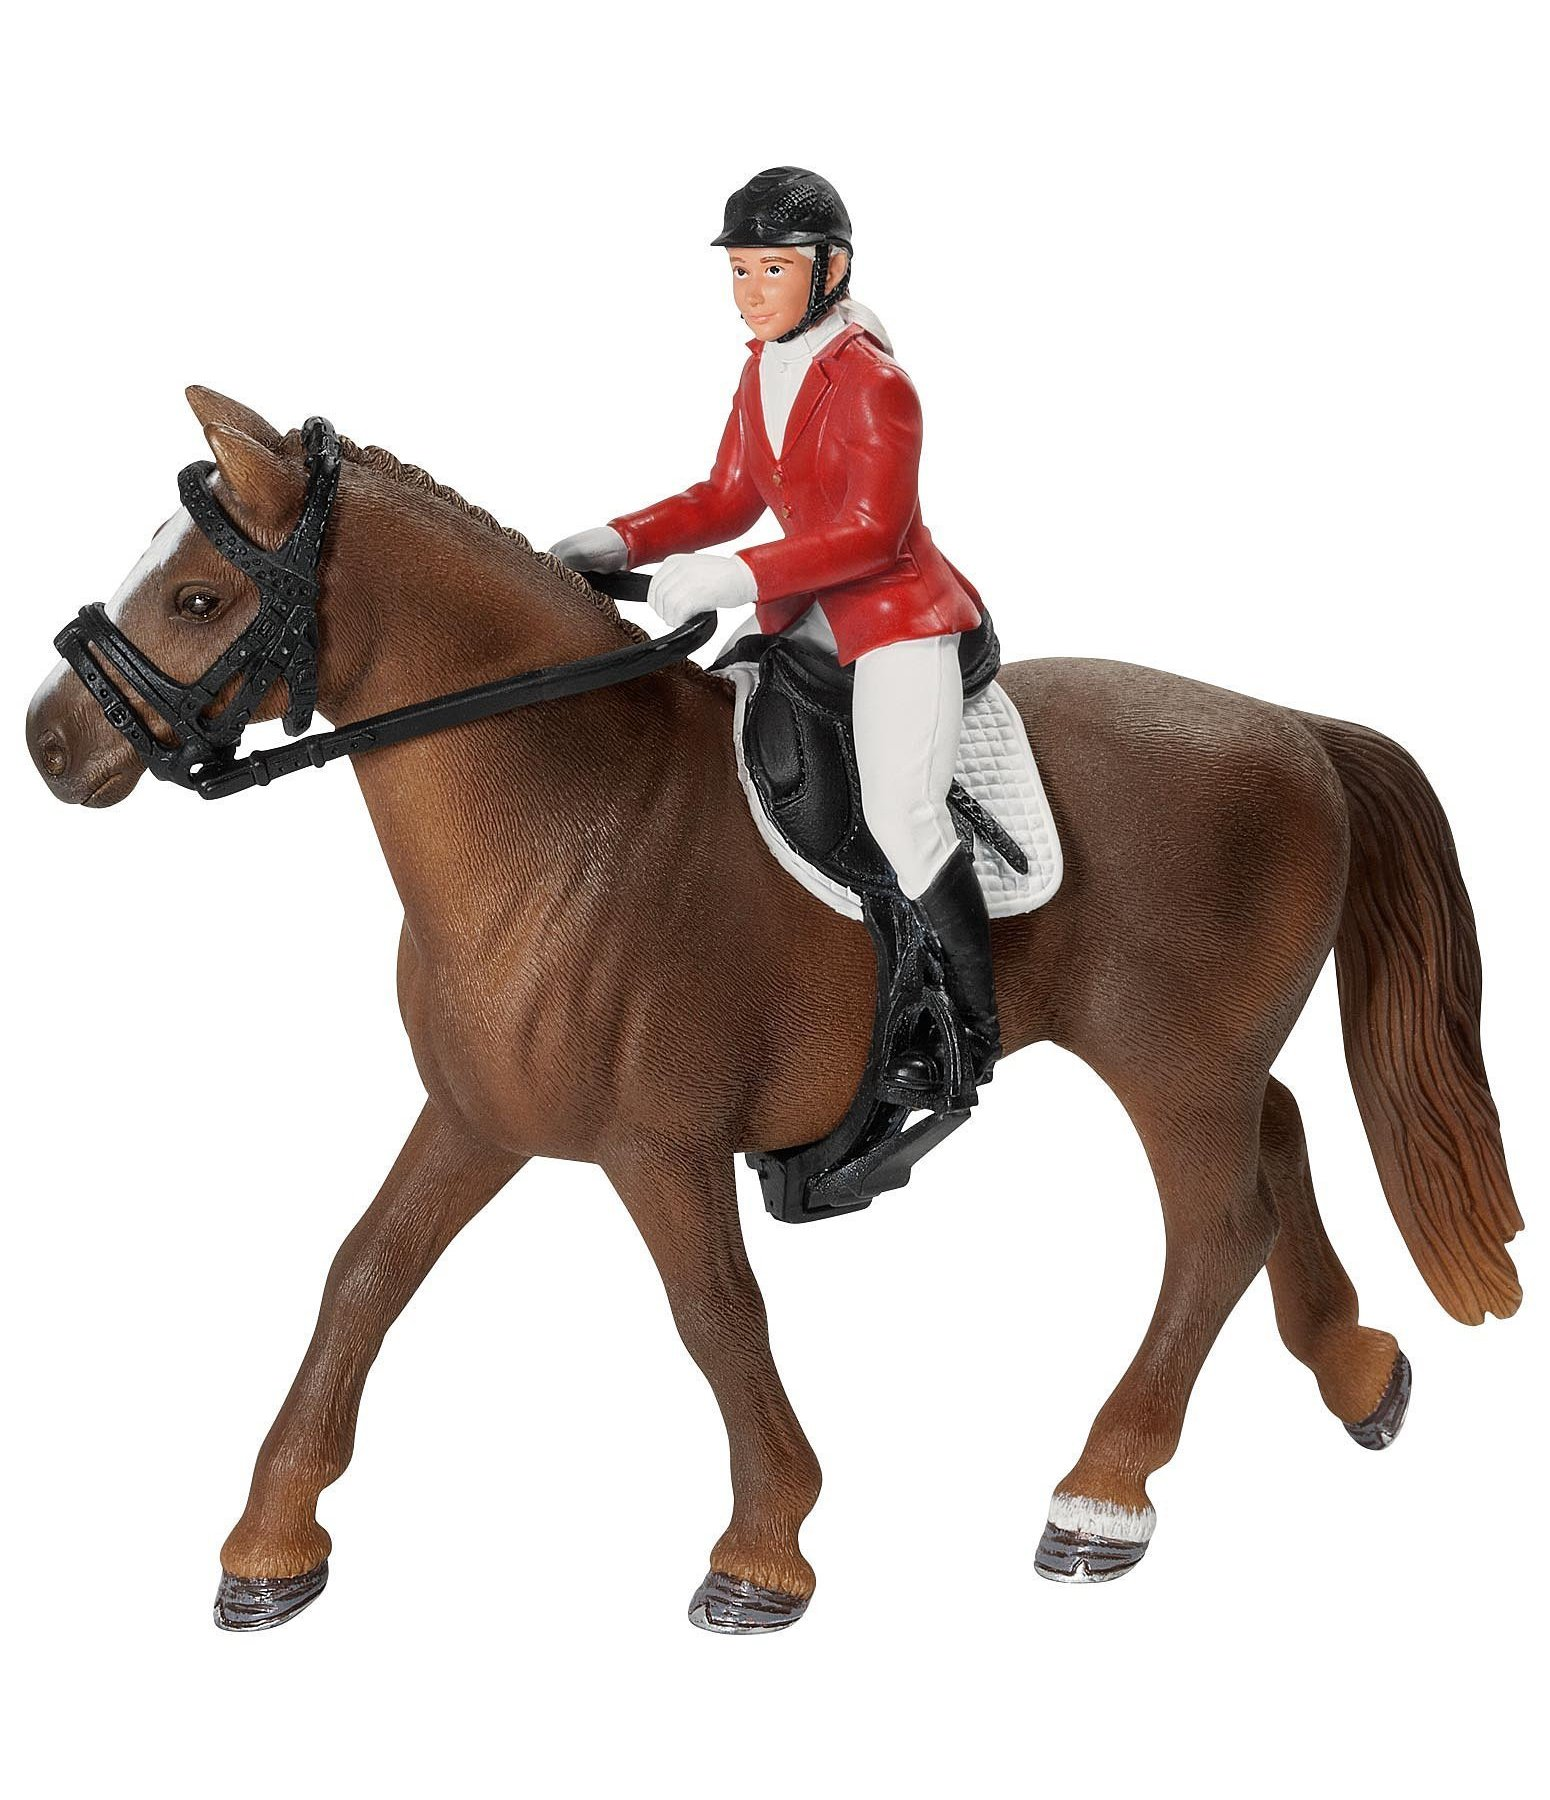 Kit saut d 39 obstacle sans cheval figurines questres kramer equitation - Frison saut d obstacle ...